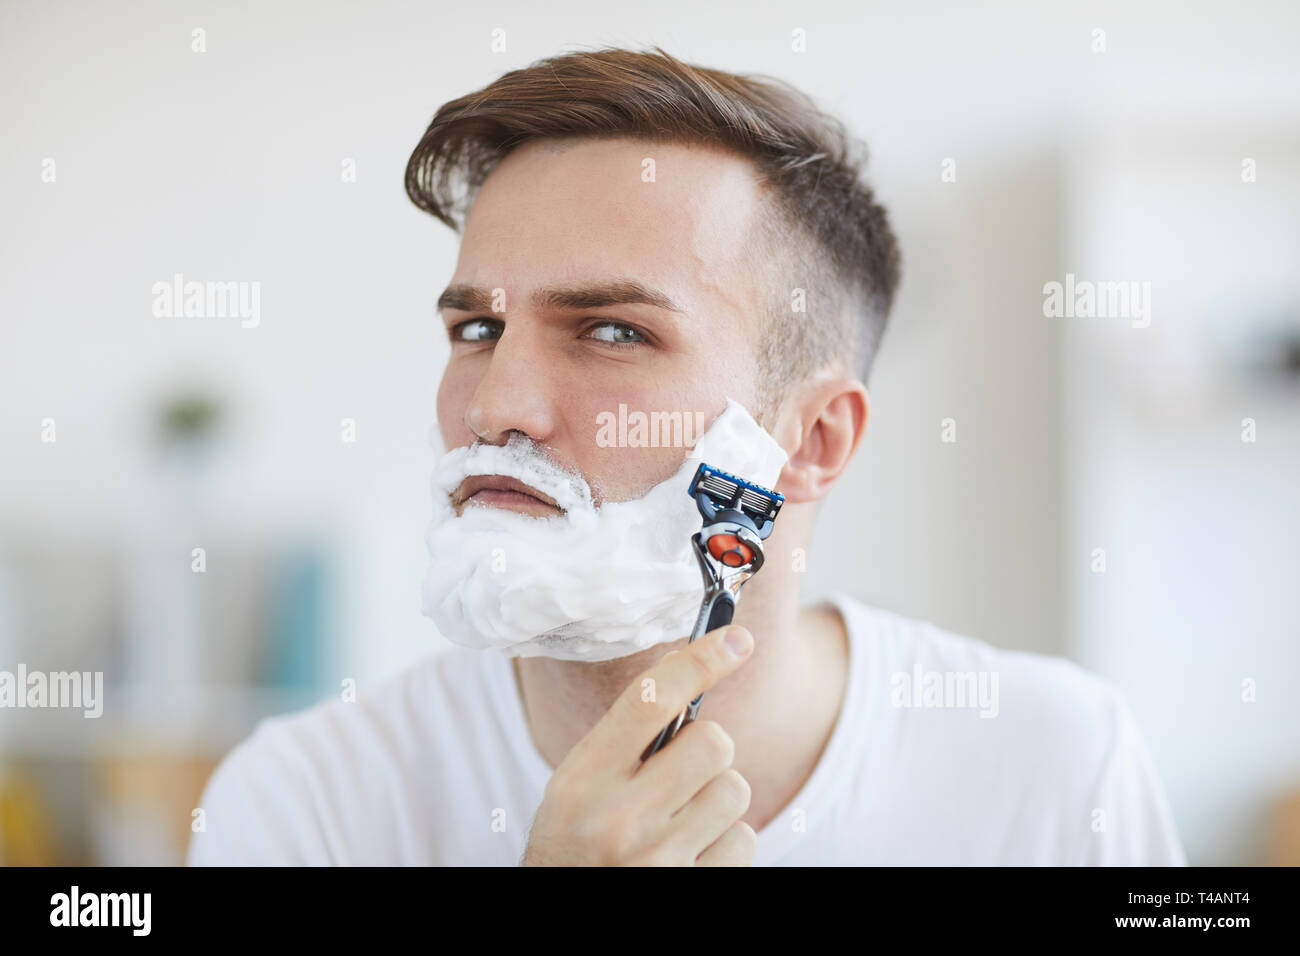 Young Man Shaving - Stock Image